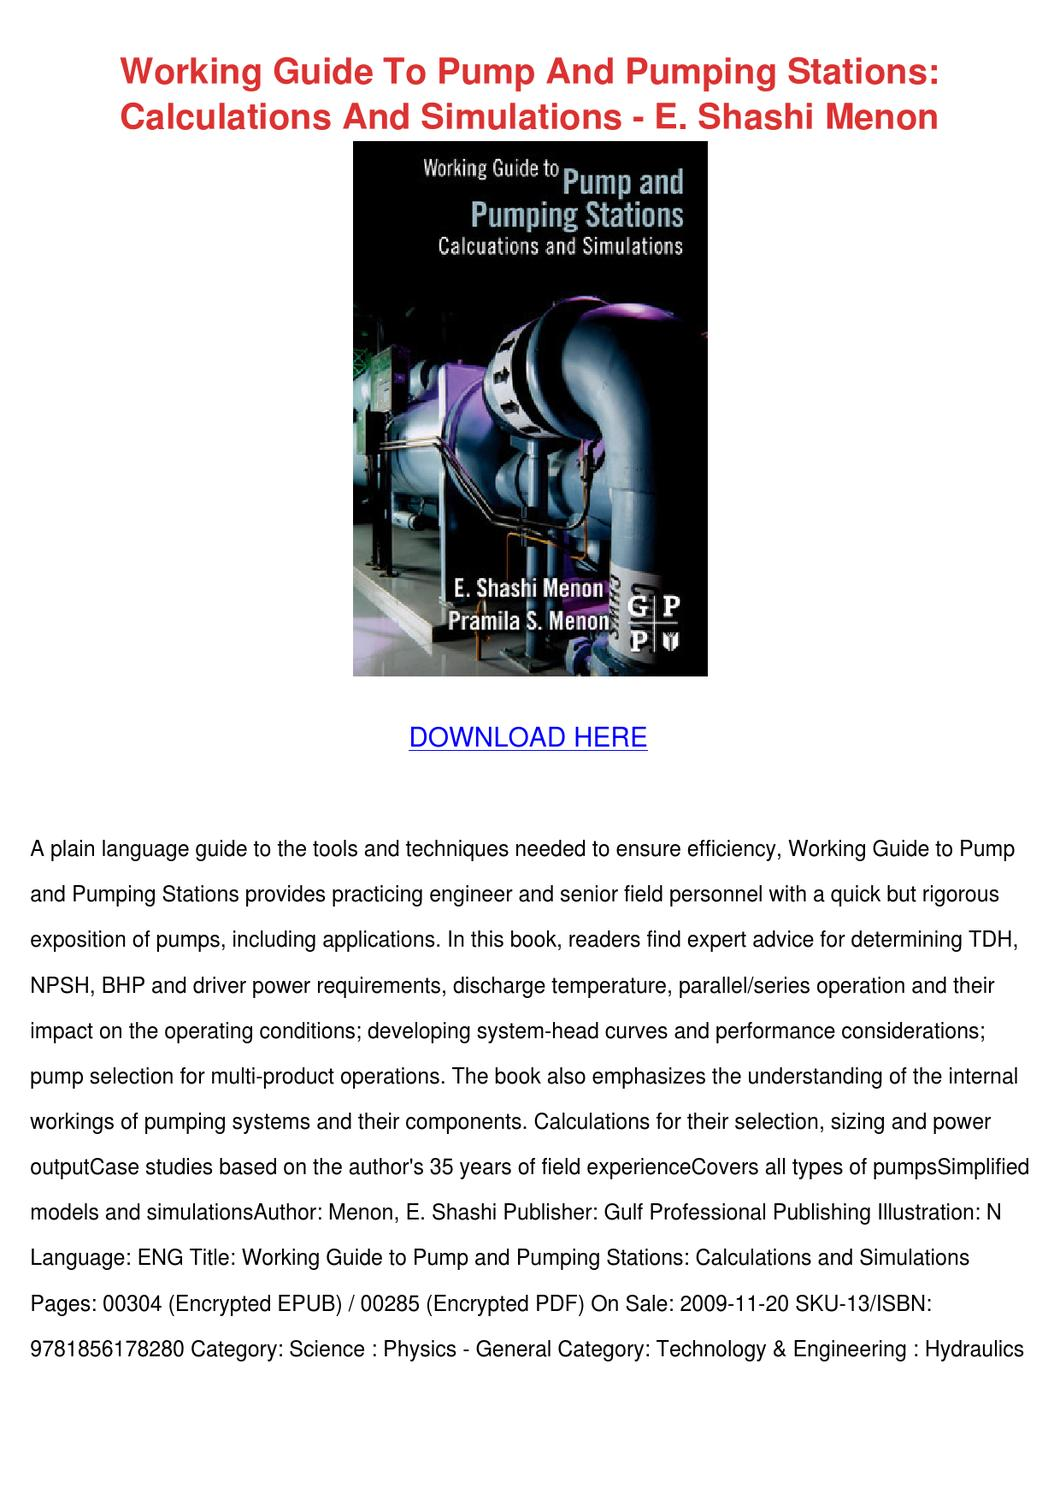 Working Guide To Pump And Pumping Stations Ca by Phoebe Constantine - issuu